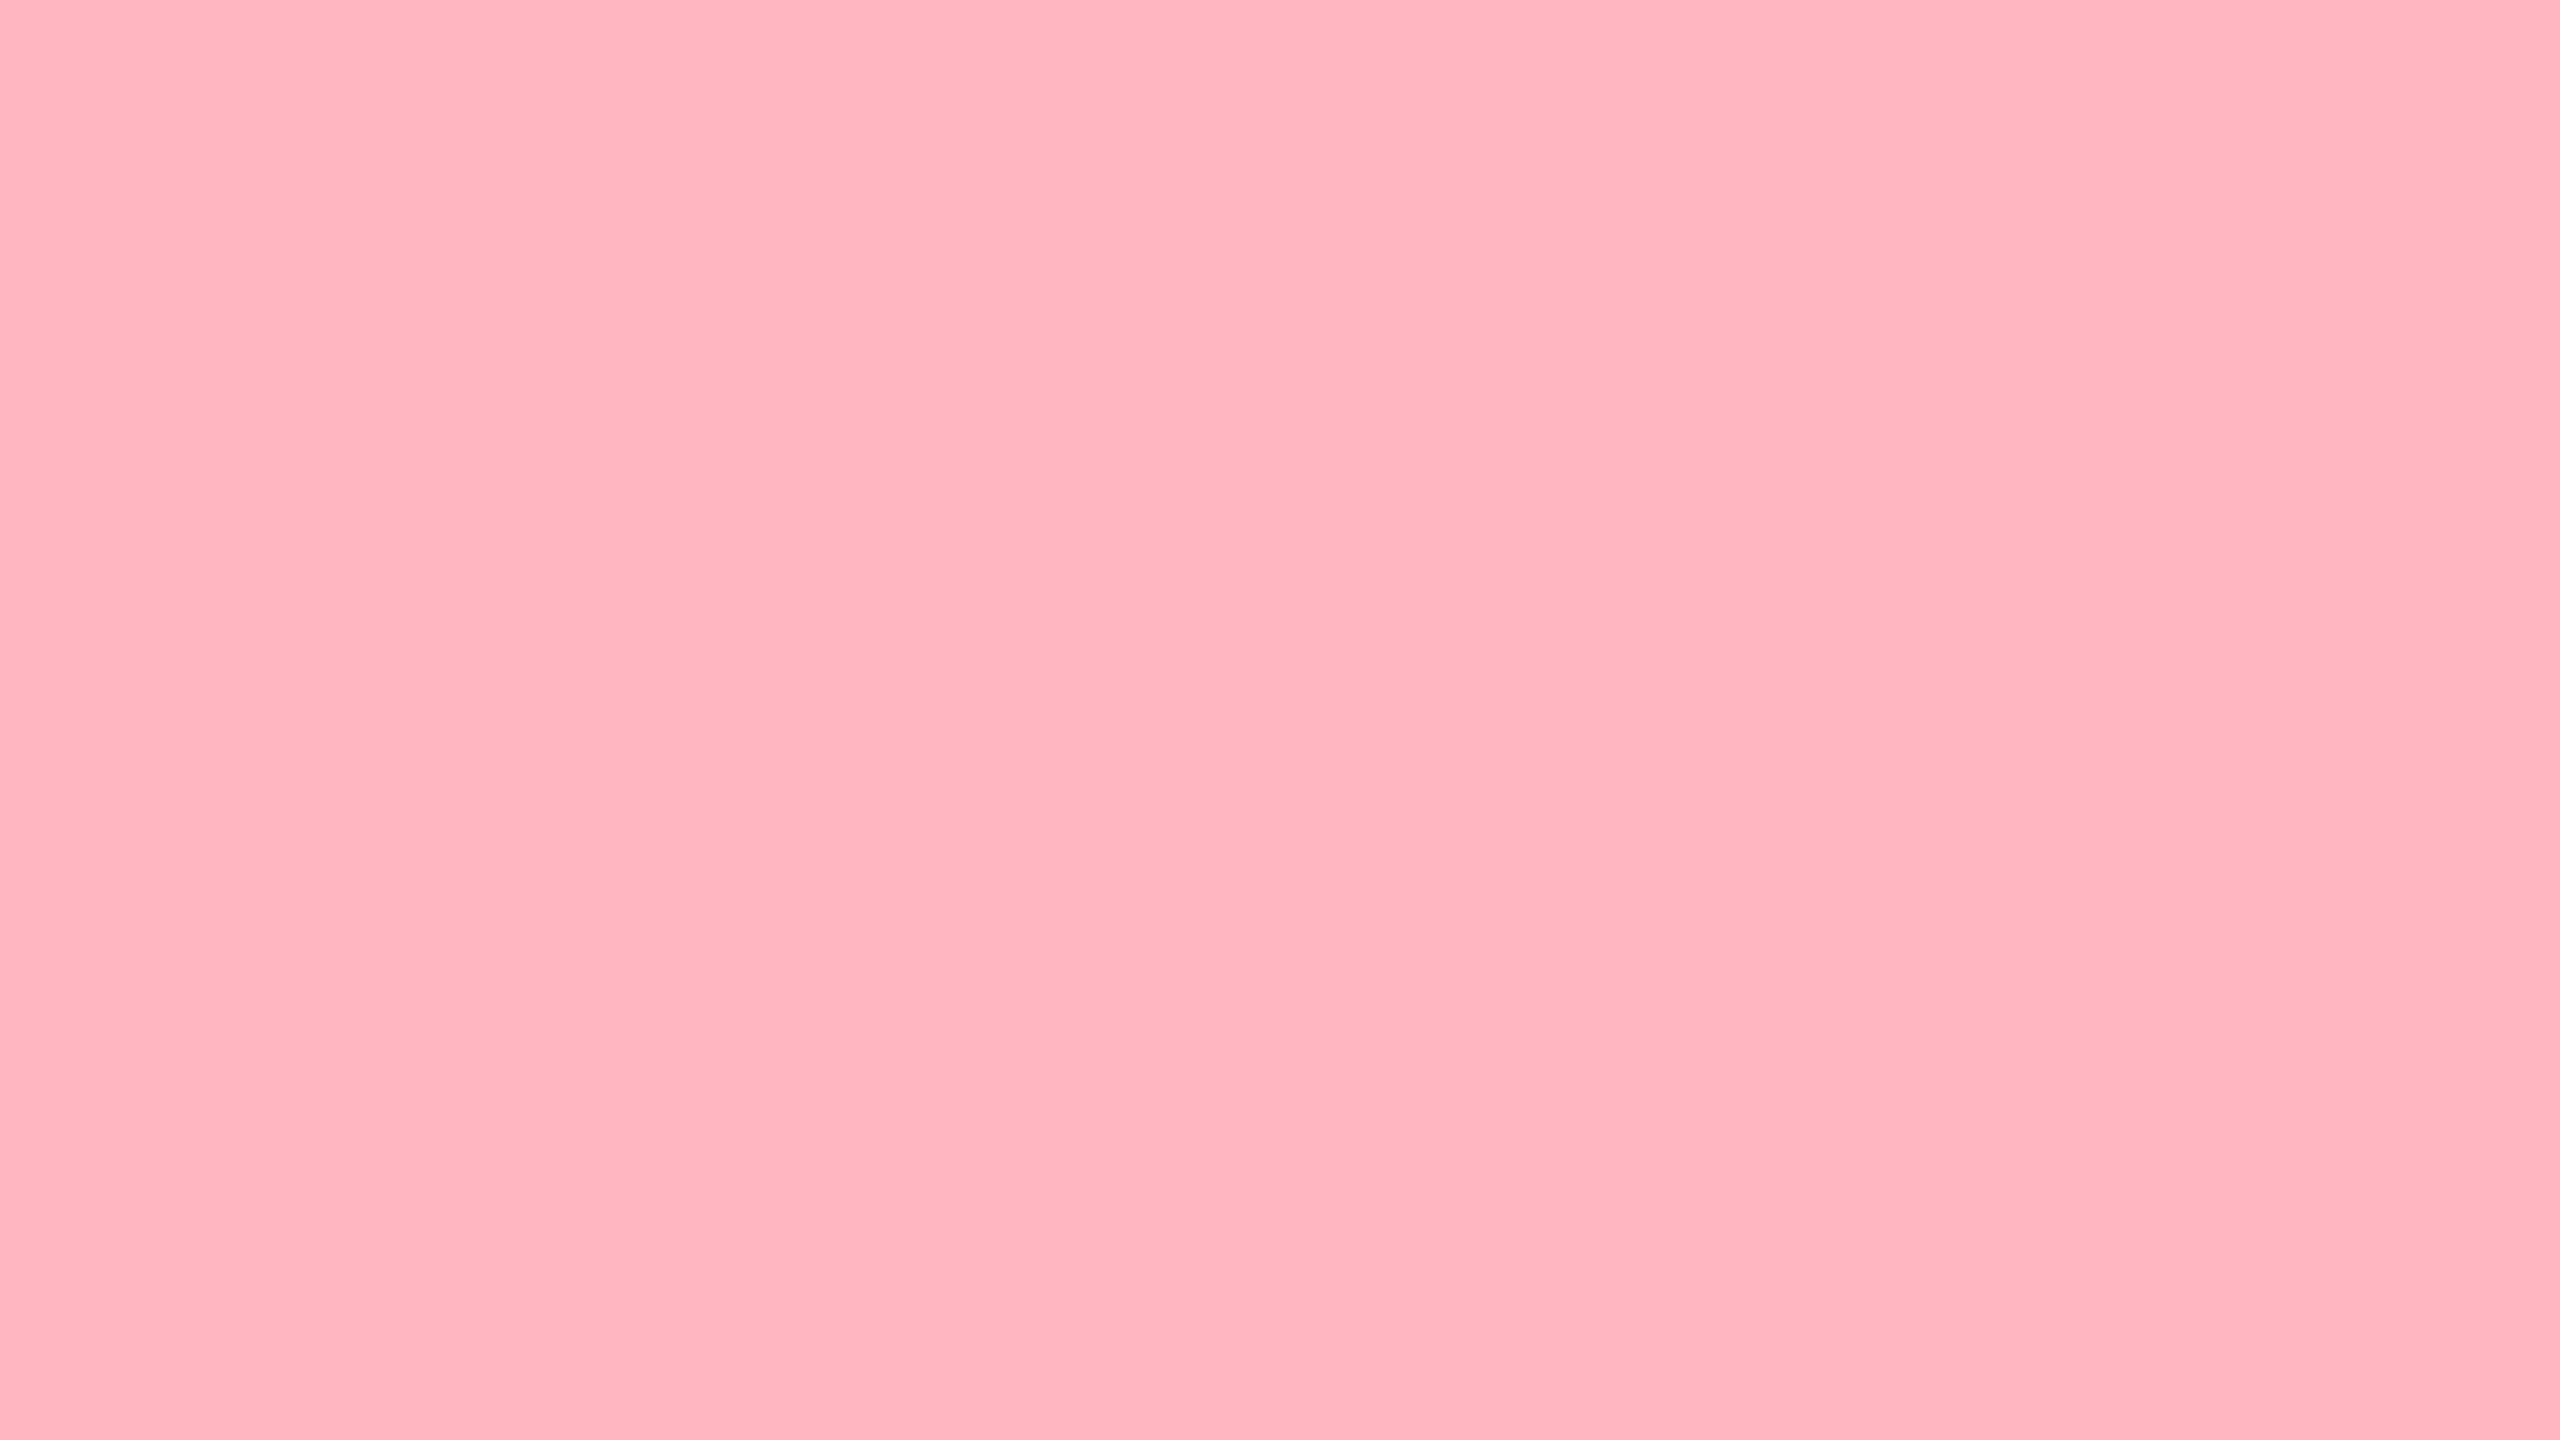 background tumblr plain pink s hd wallpaper